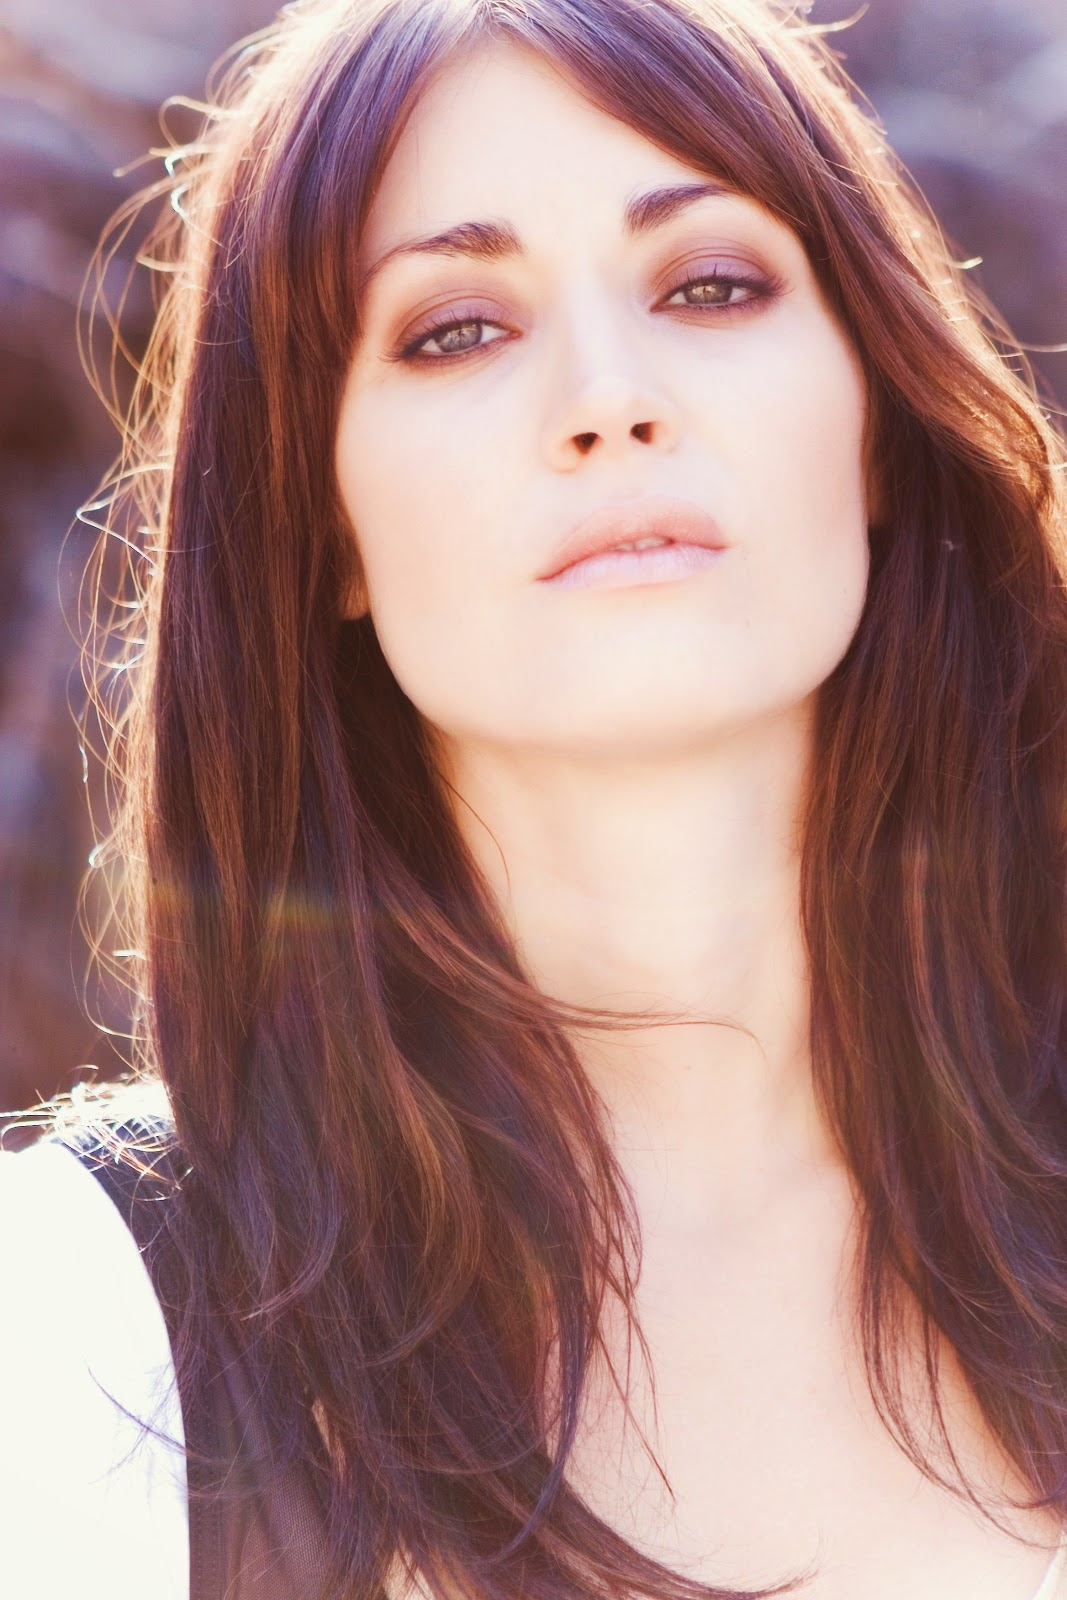 Death Race 3 Girl Tanit Phoenix HD Pictures | Wallpapers of Mad Buddies actress Tanit Phoenix